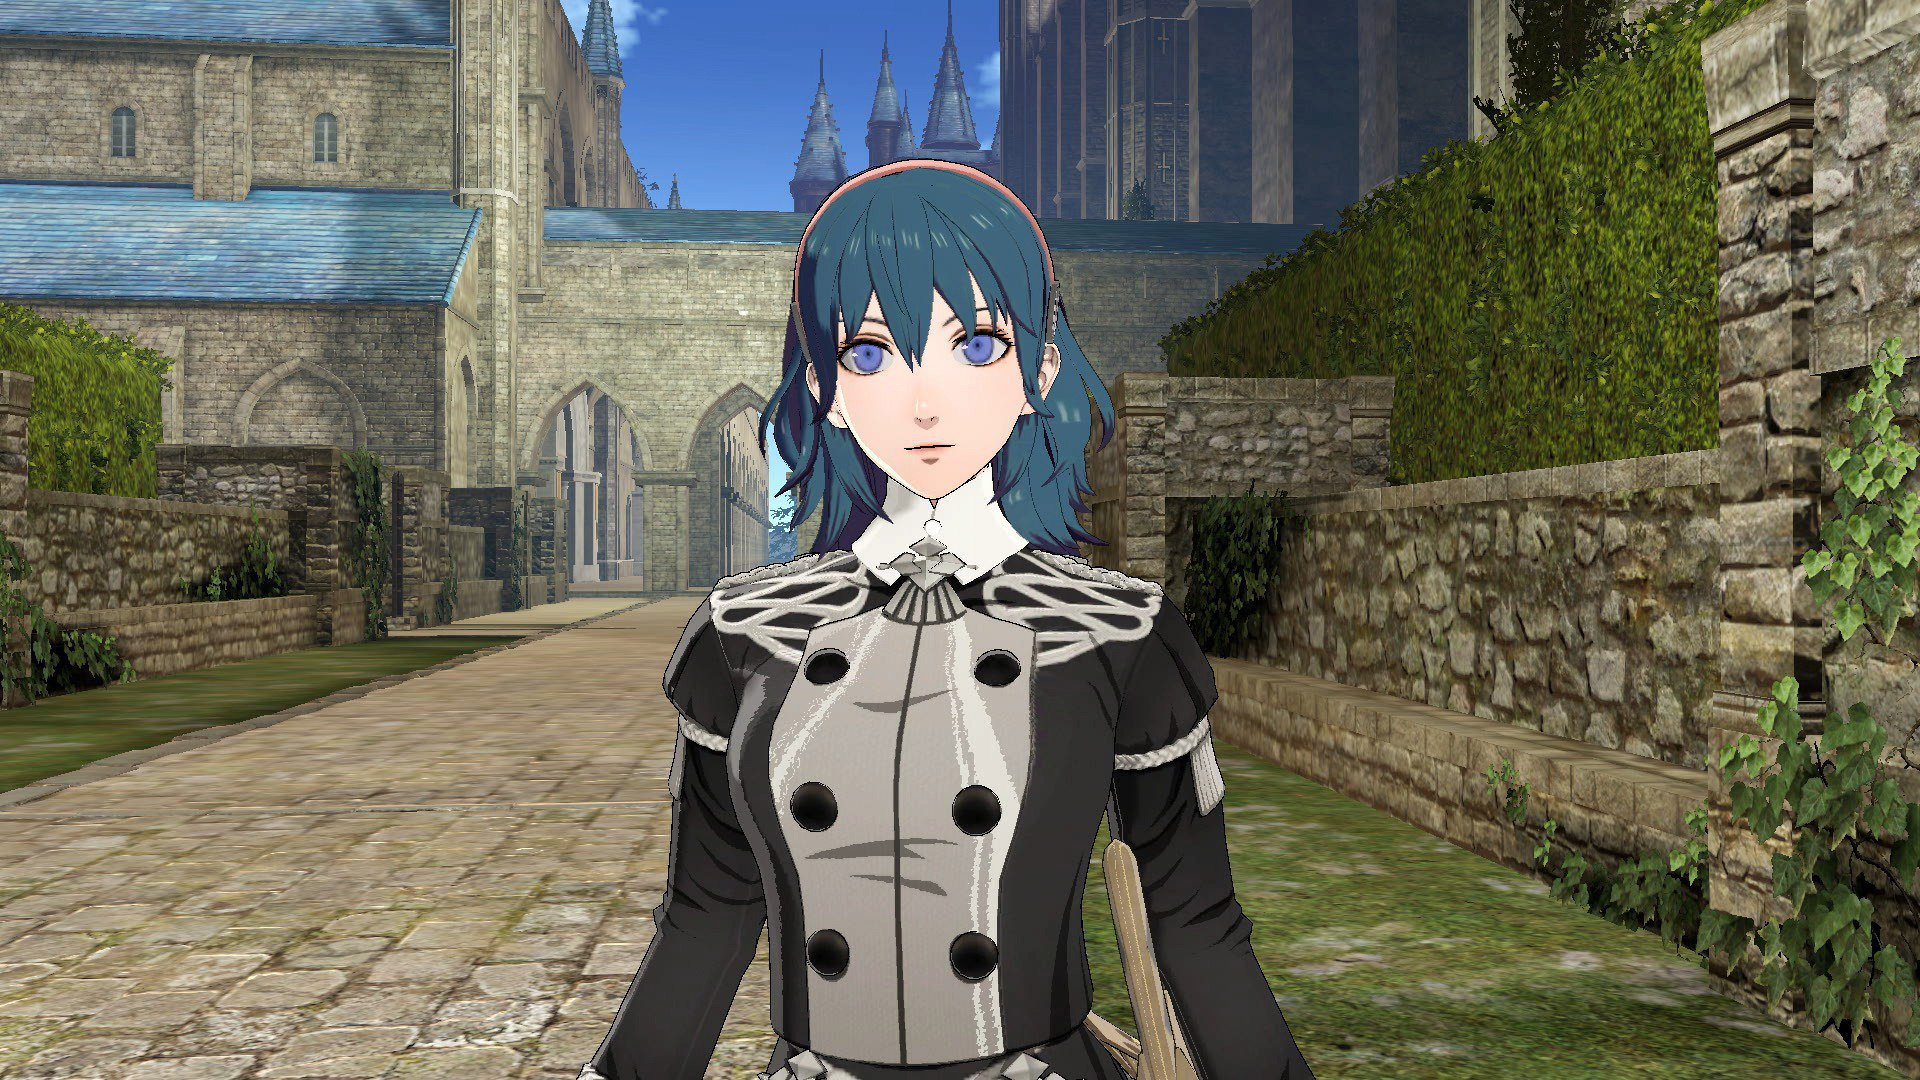 Fire Emblem: Three Houses - how to change Byleth's costume